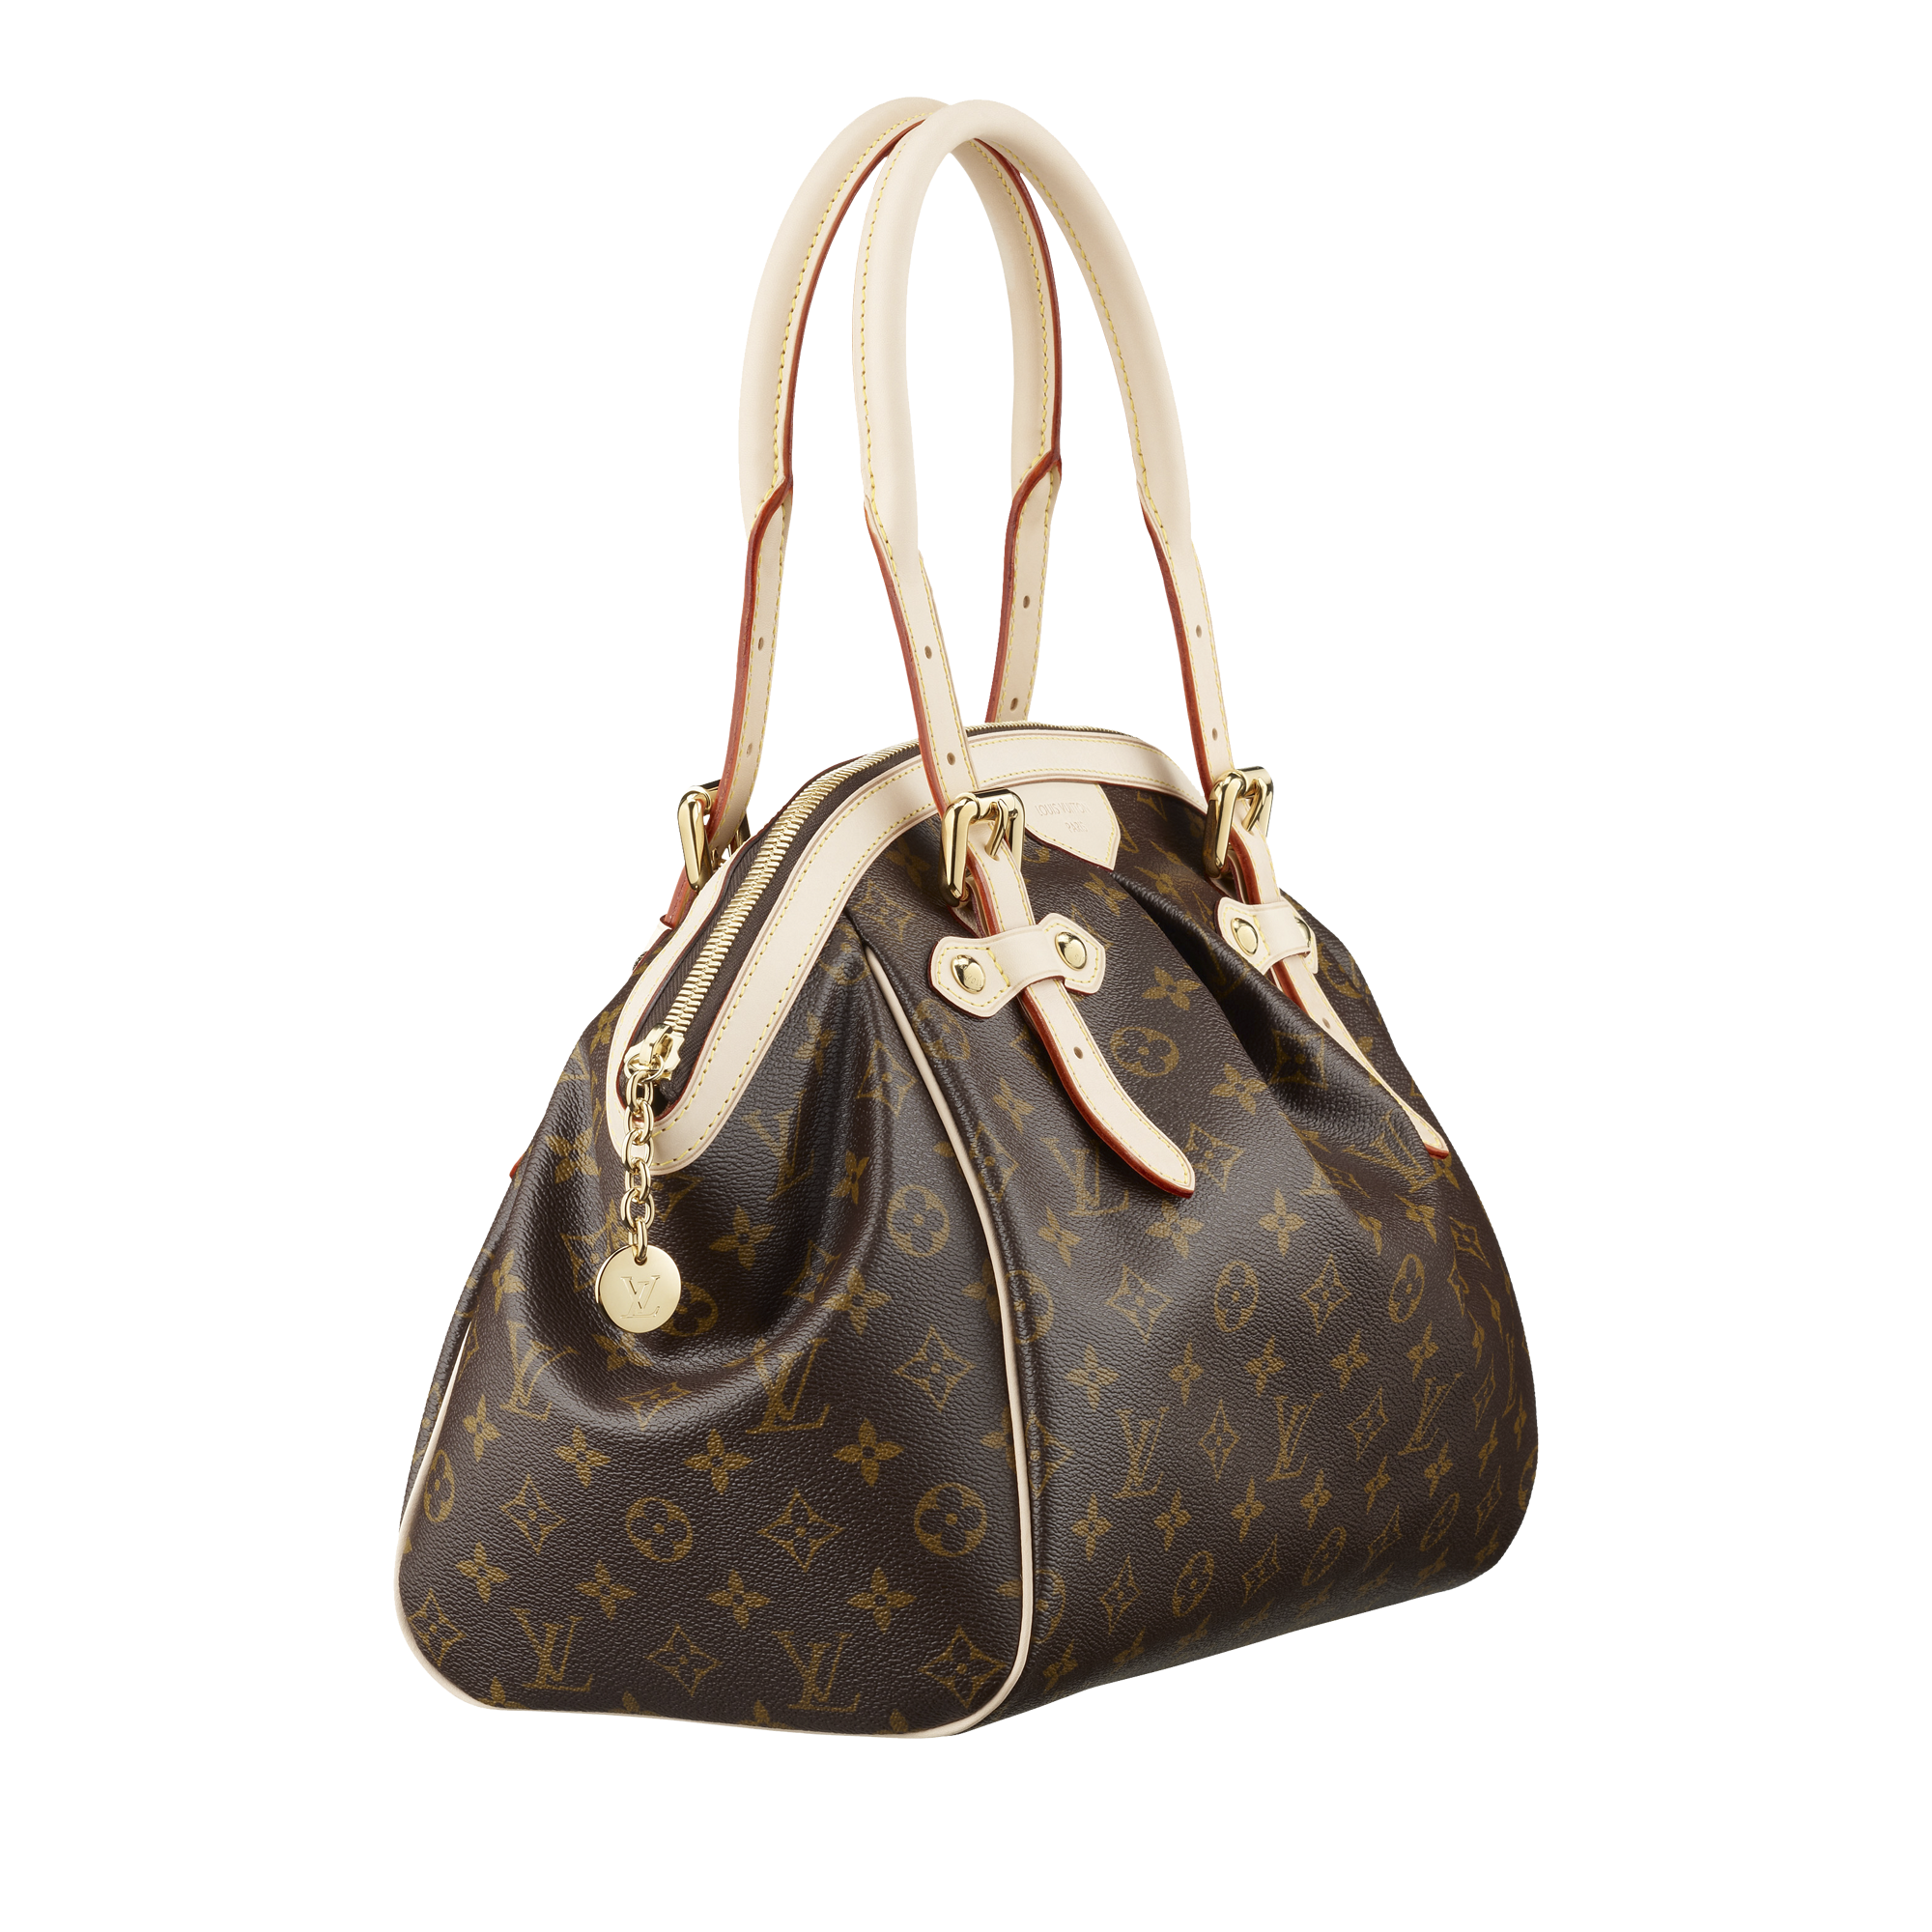 Louis Vuitton Women bag PNG image - Women Bag PNG